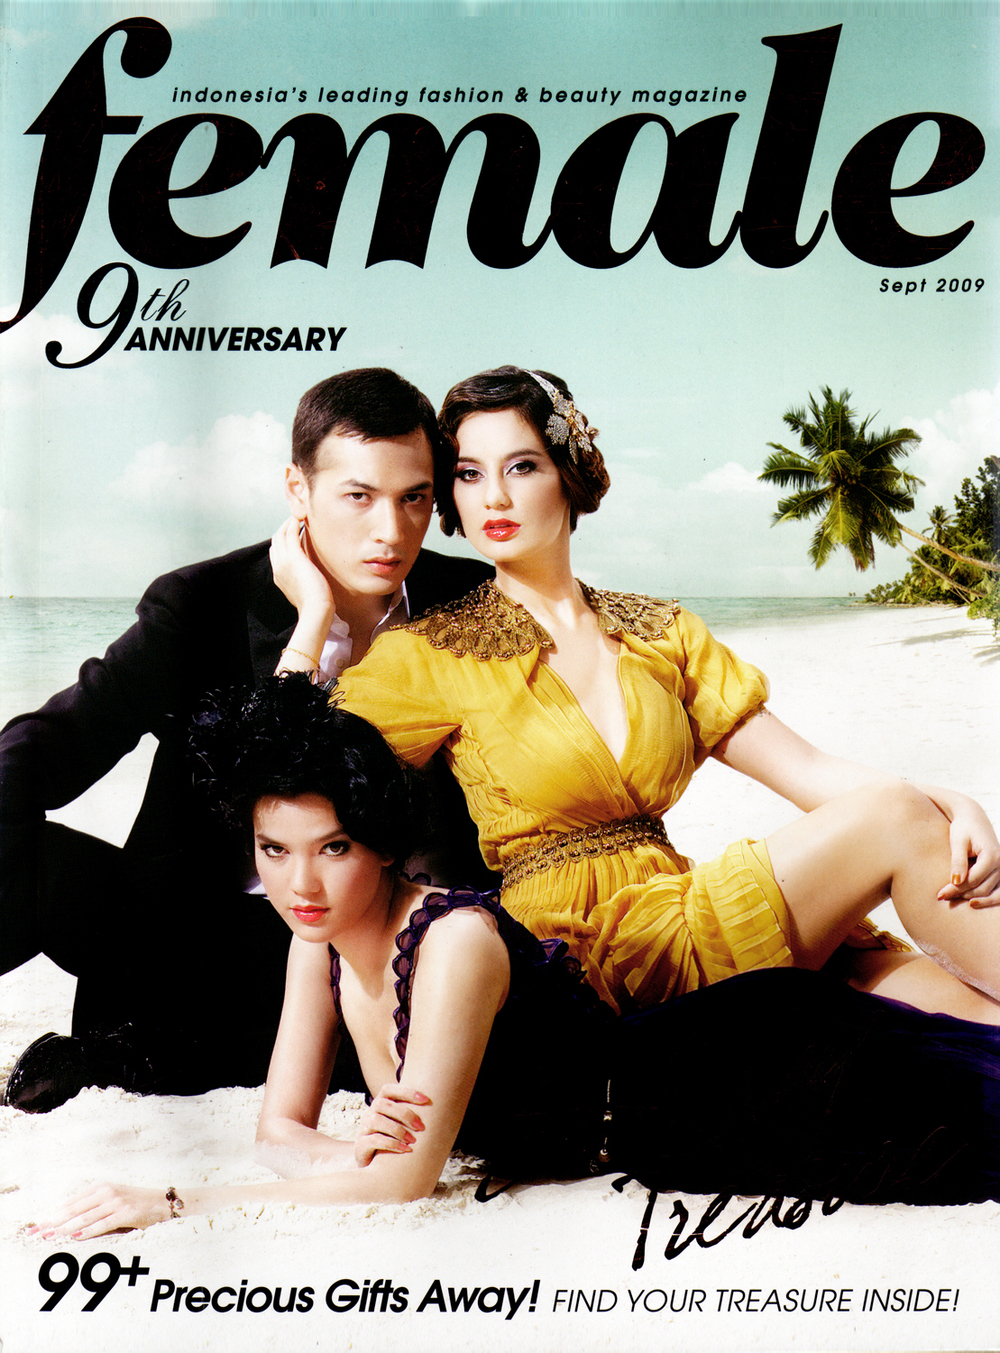 COVER-female-9thAnniversary-MAG-SEPT2009-edit.jpg